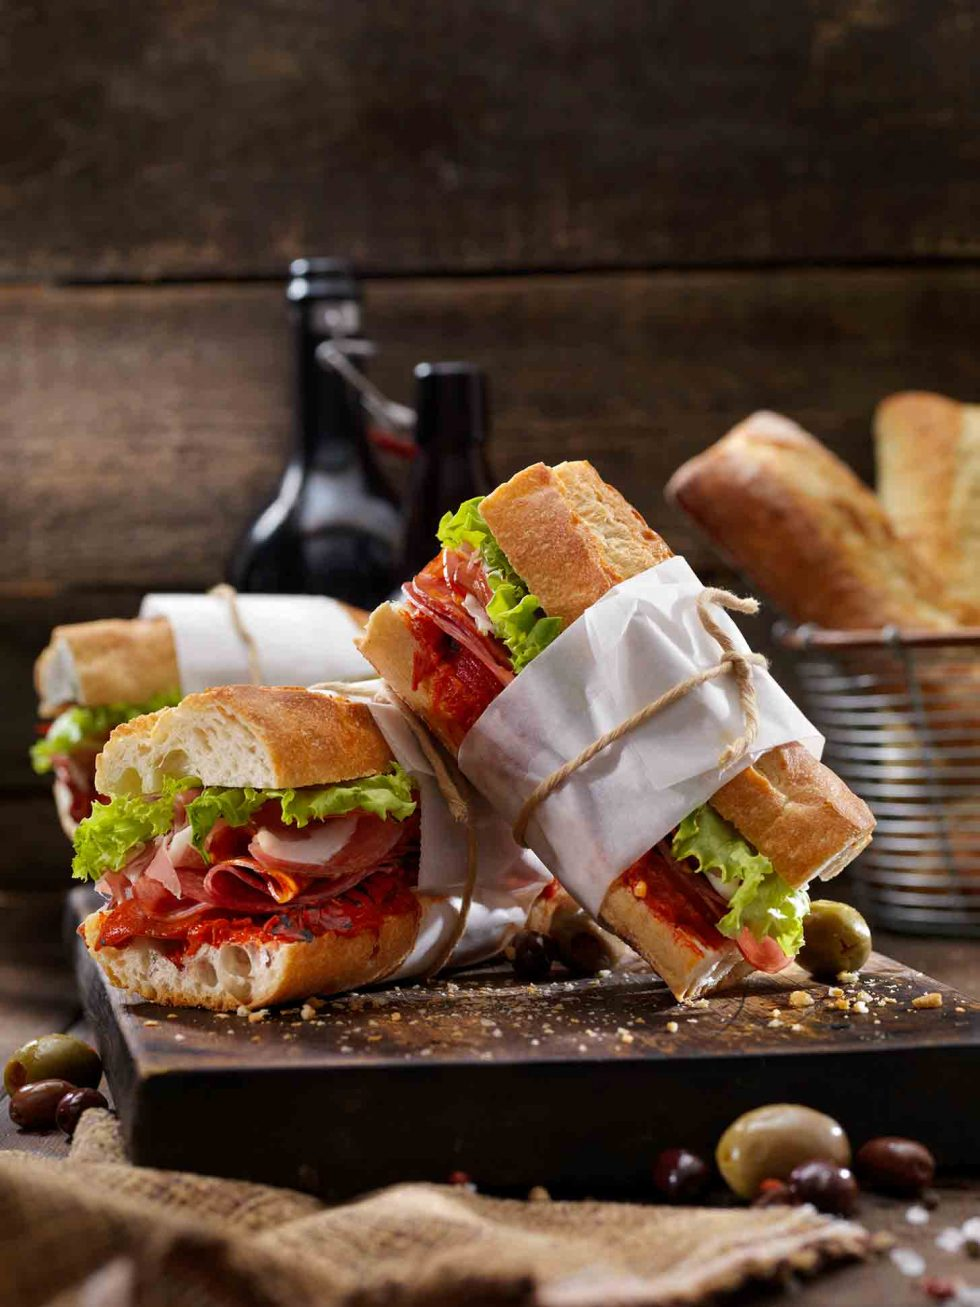 Calgary Food Photography. Fresh wrapped and tied deli sandwiches on rustic backdrop.